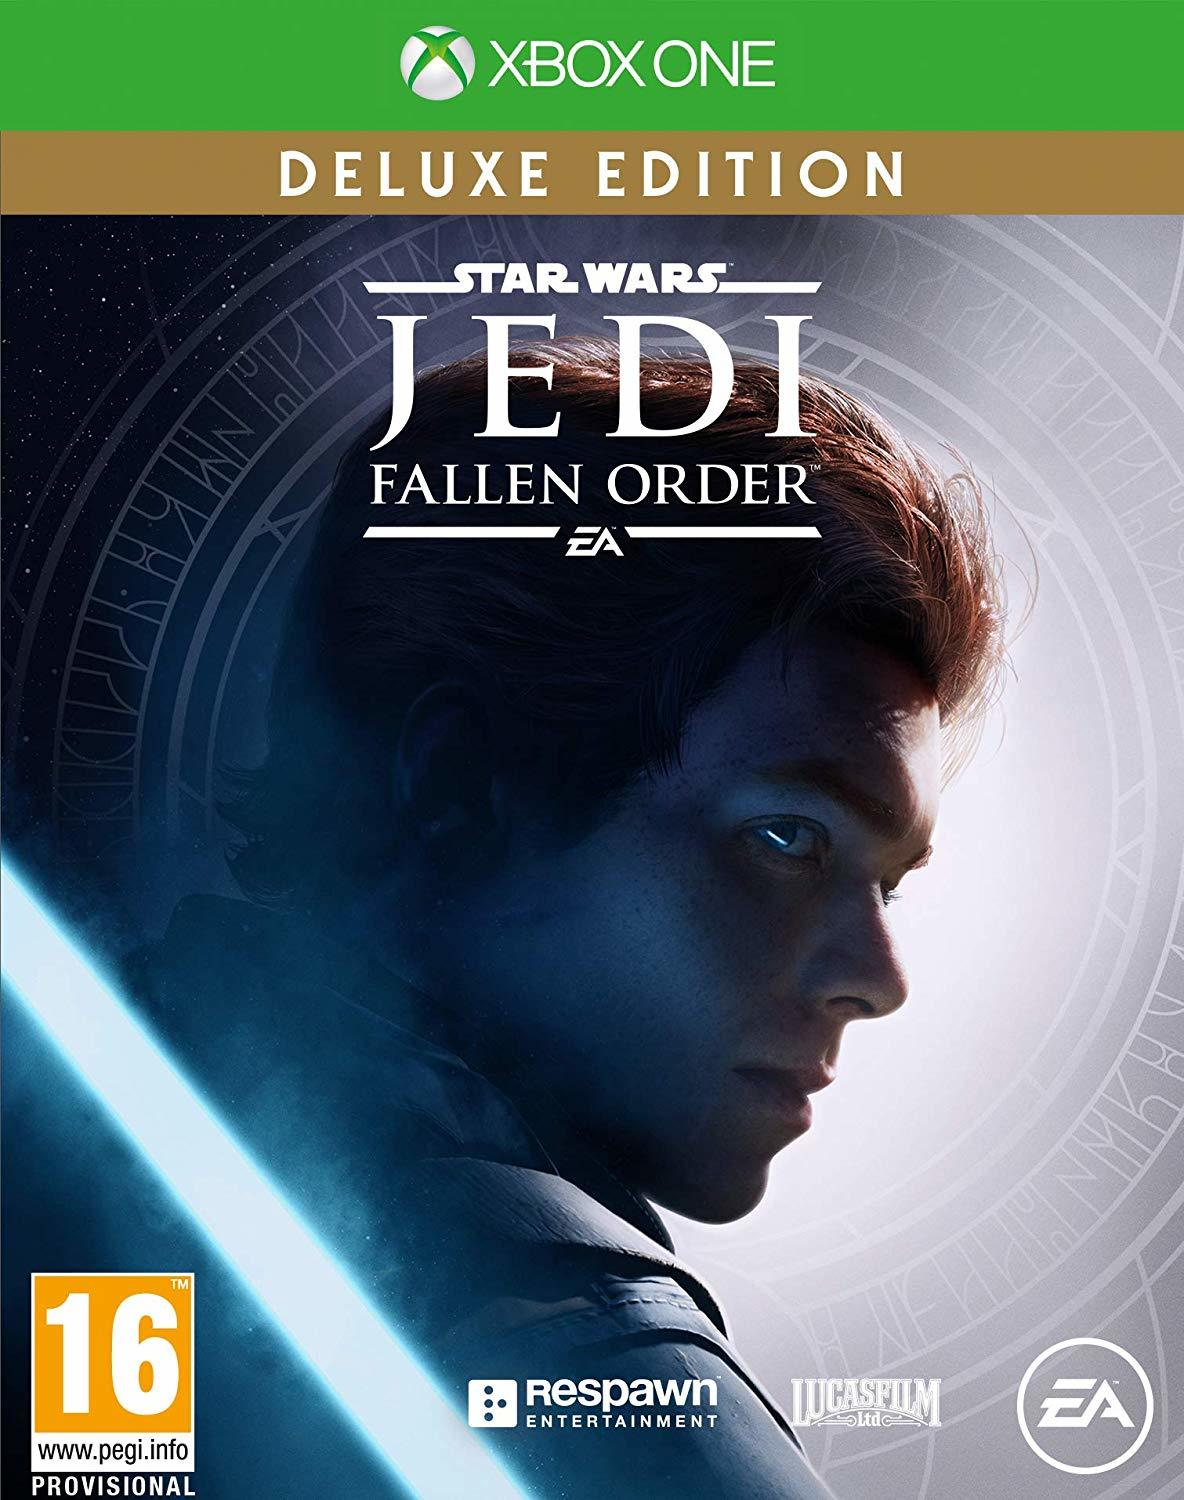 Star Wars Jedi: Fallen Order Deluxe Edition for Xbox One image